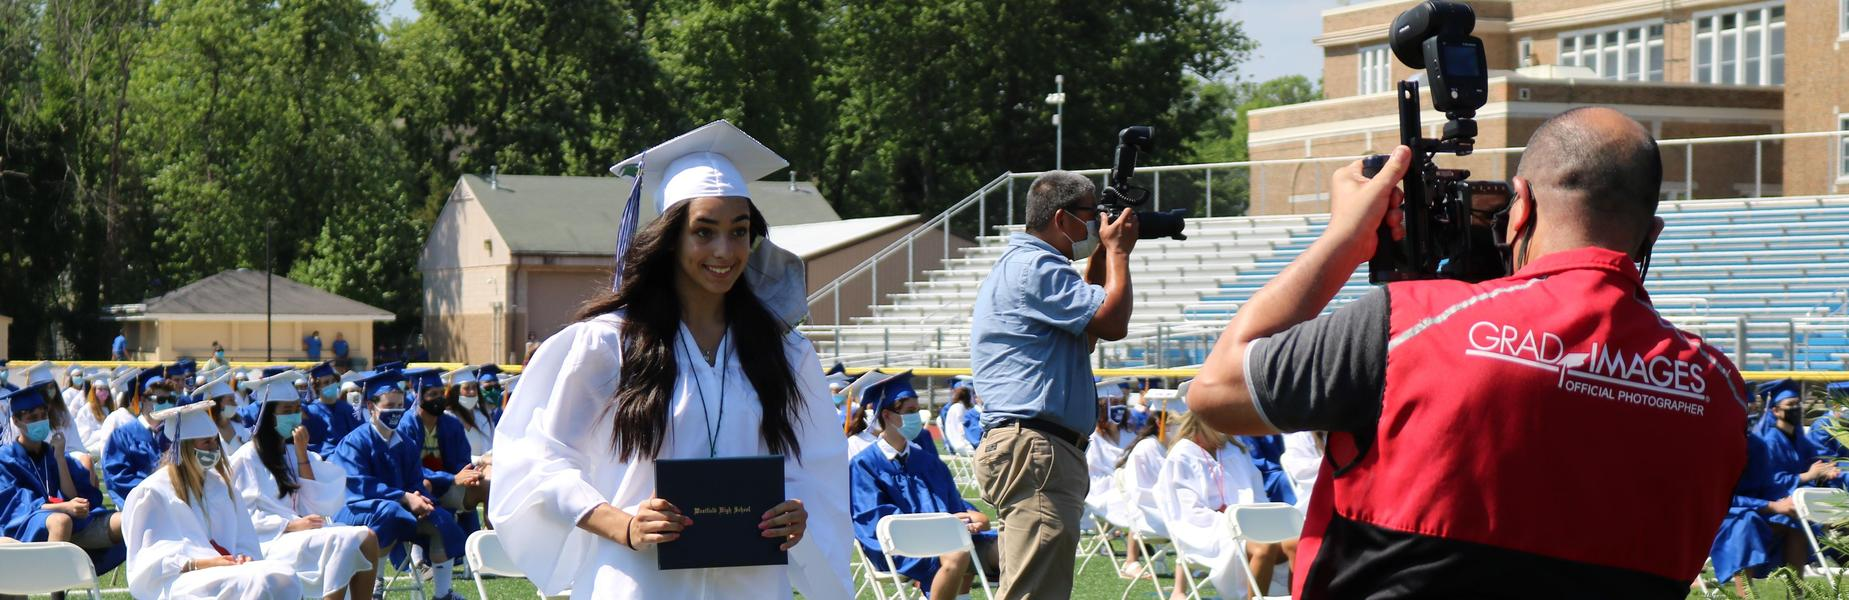 Photo of WHS senior posing for picture at graduation for Class of 2020.